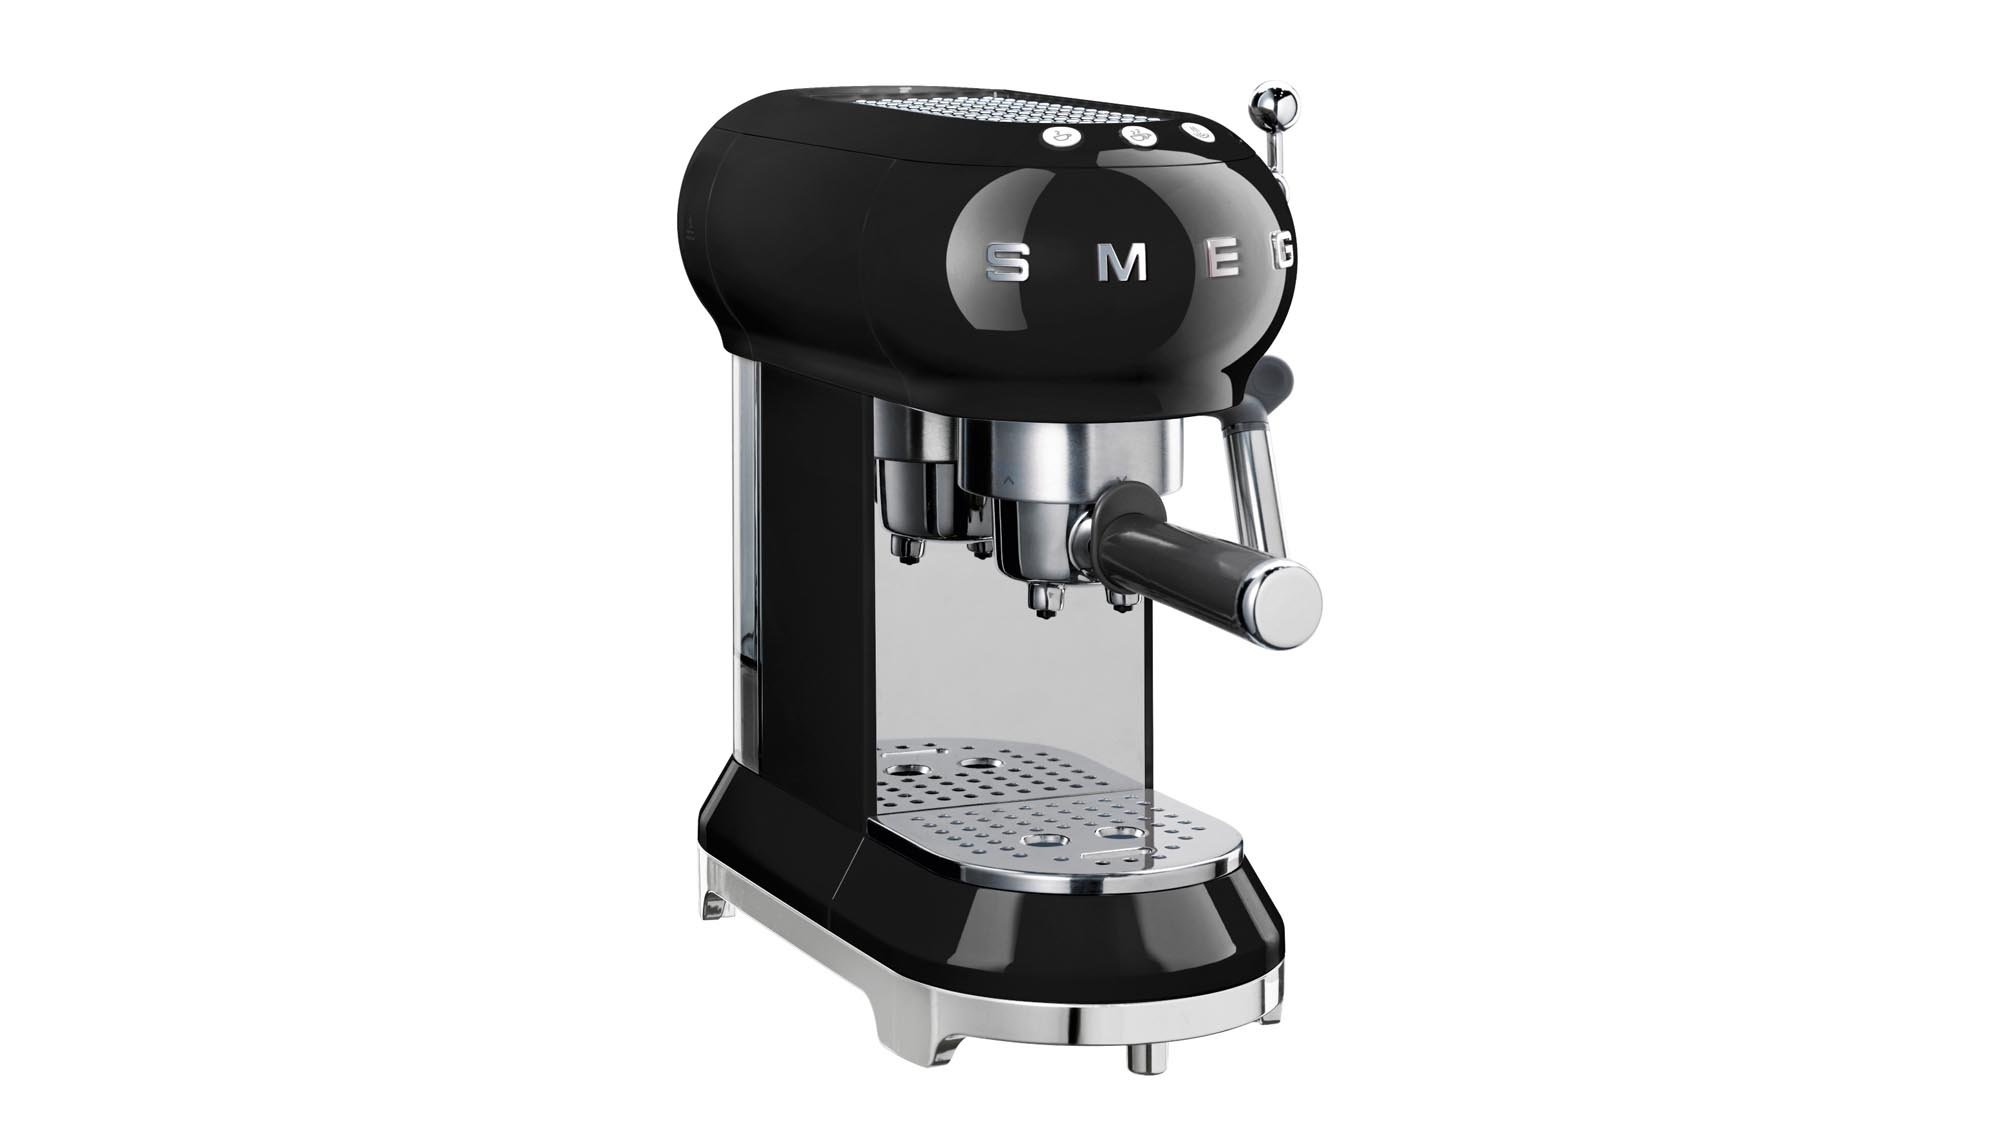 best coffee maker in the us 2018 how to pick the right coffee maker for you expert reviews. Black Bedroom Furniture Sets. Home Design Ideas